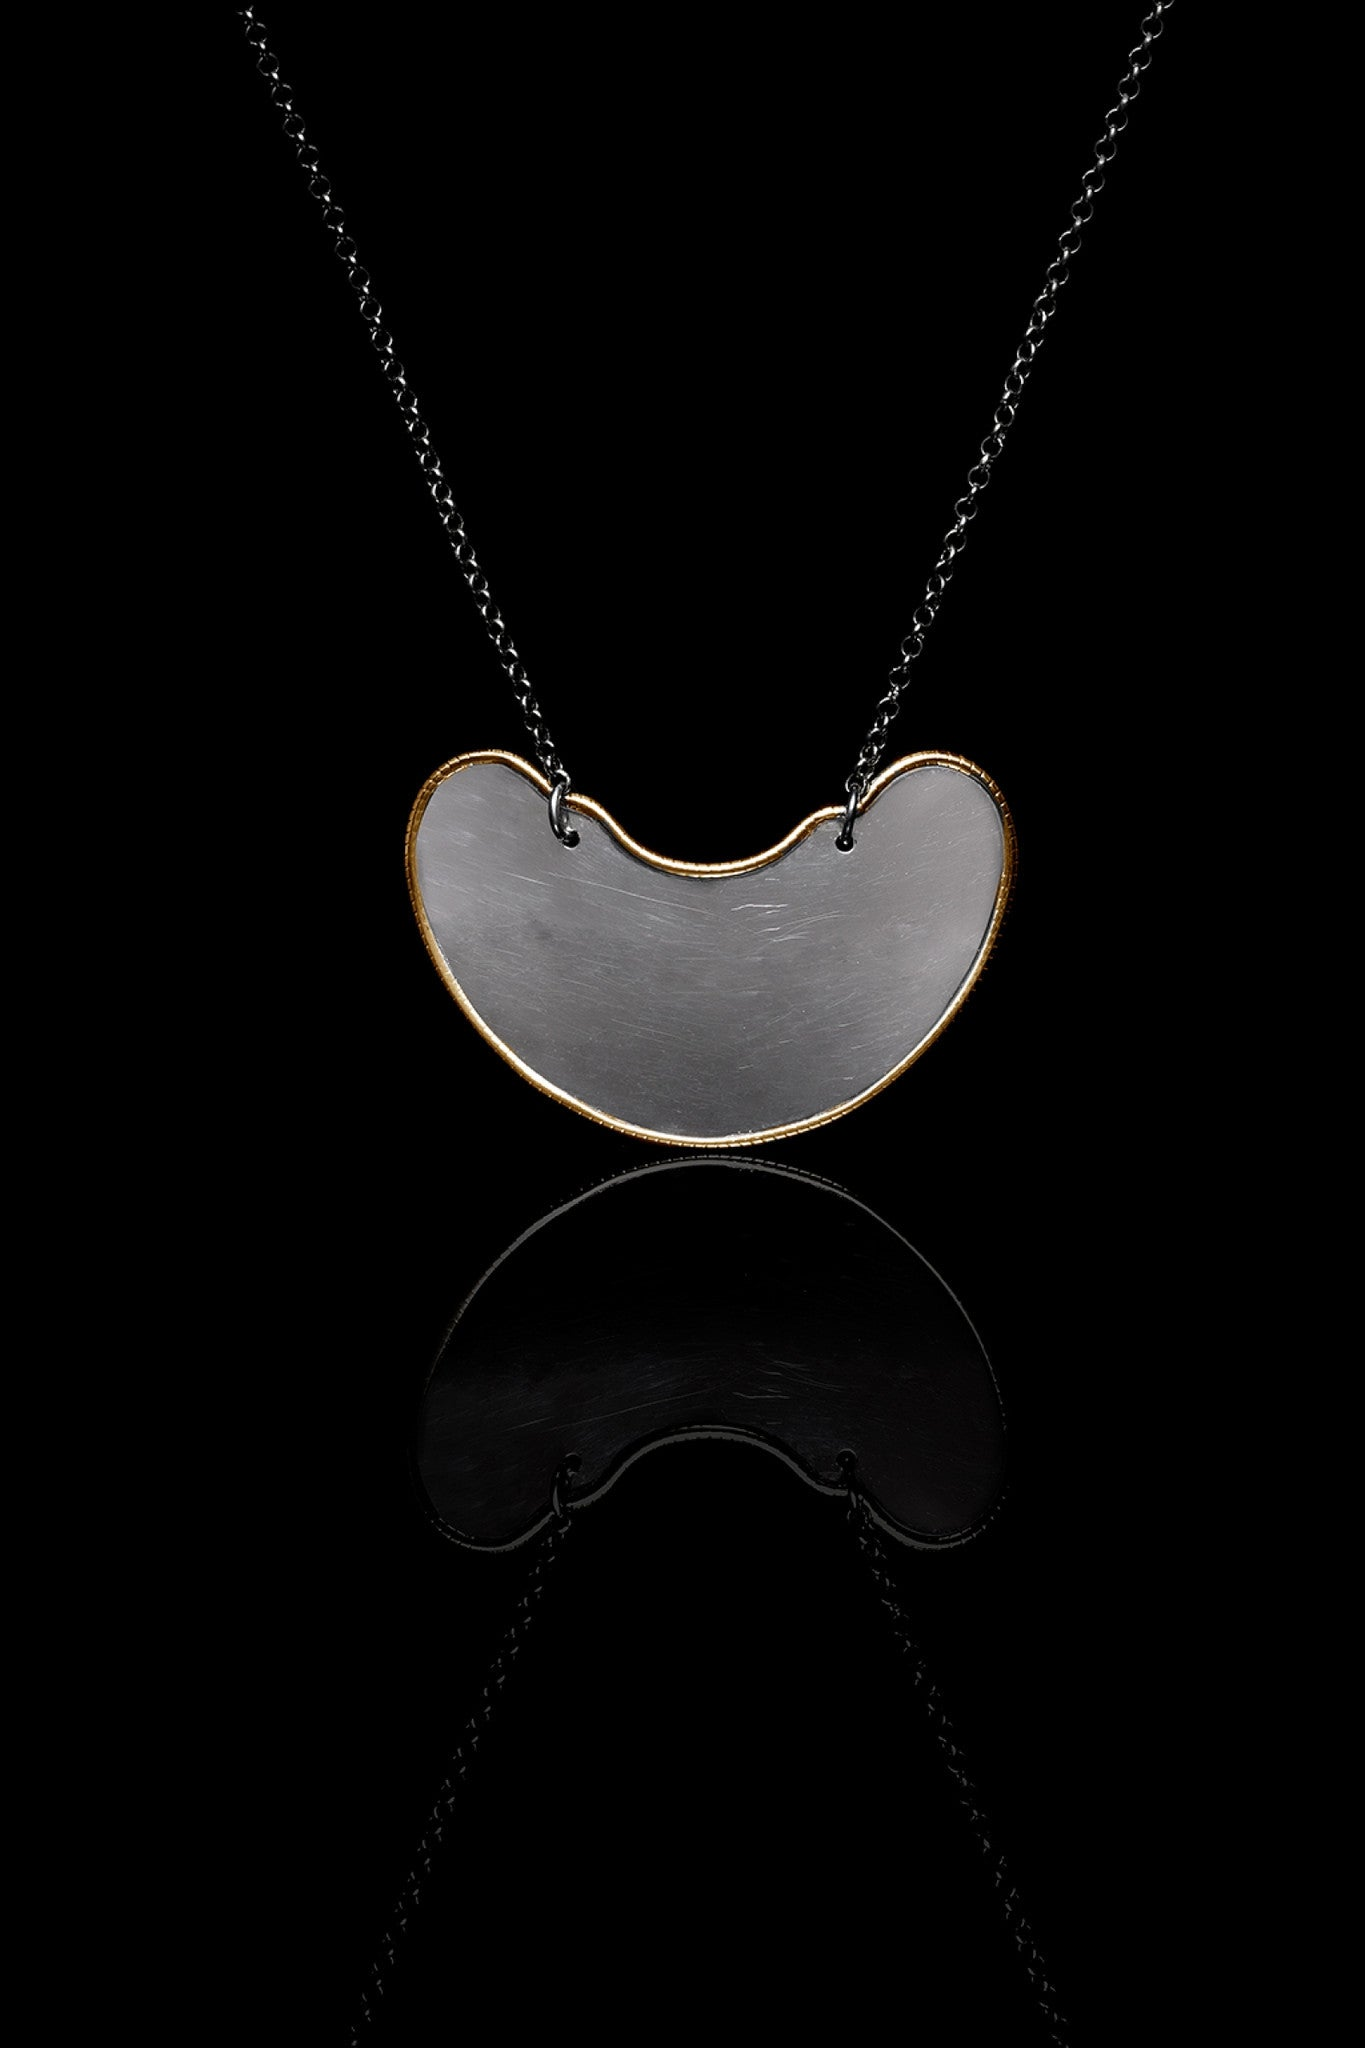 Ugo Cacciatori, Gold, Jewelry, 9kt Gold + Sterling Silver, Pendant, Gold + SIlver